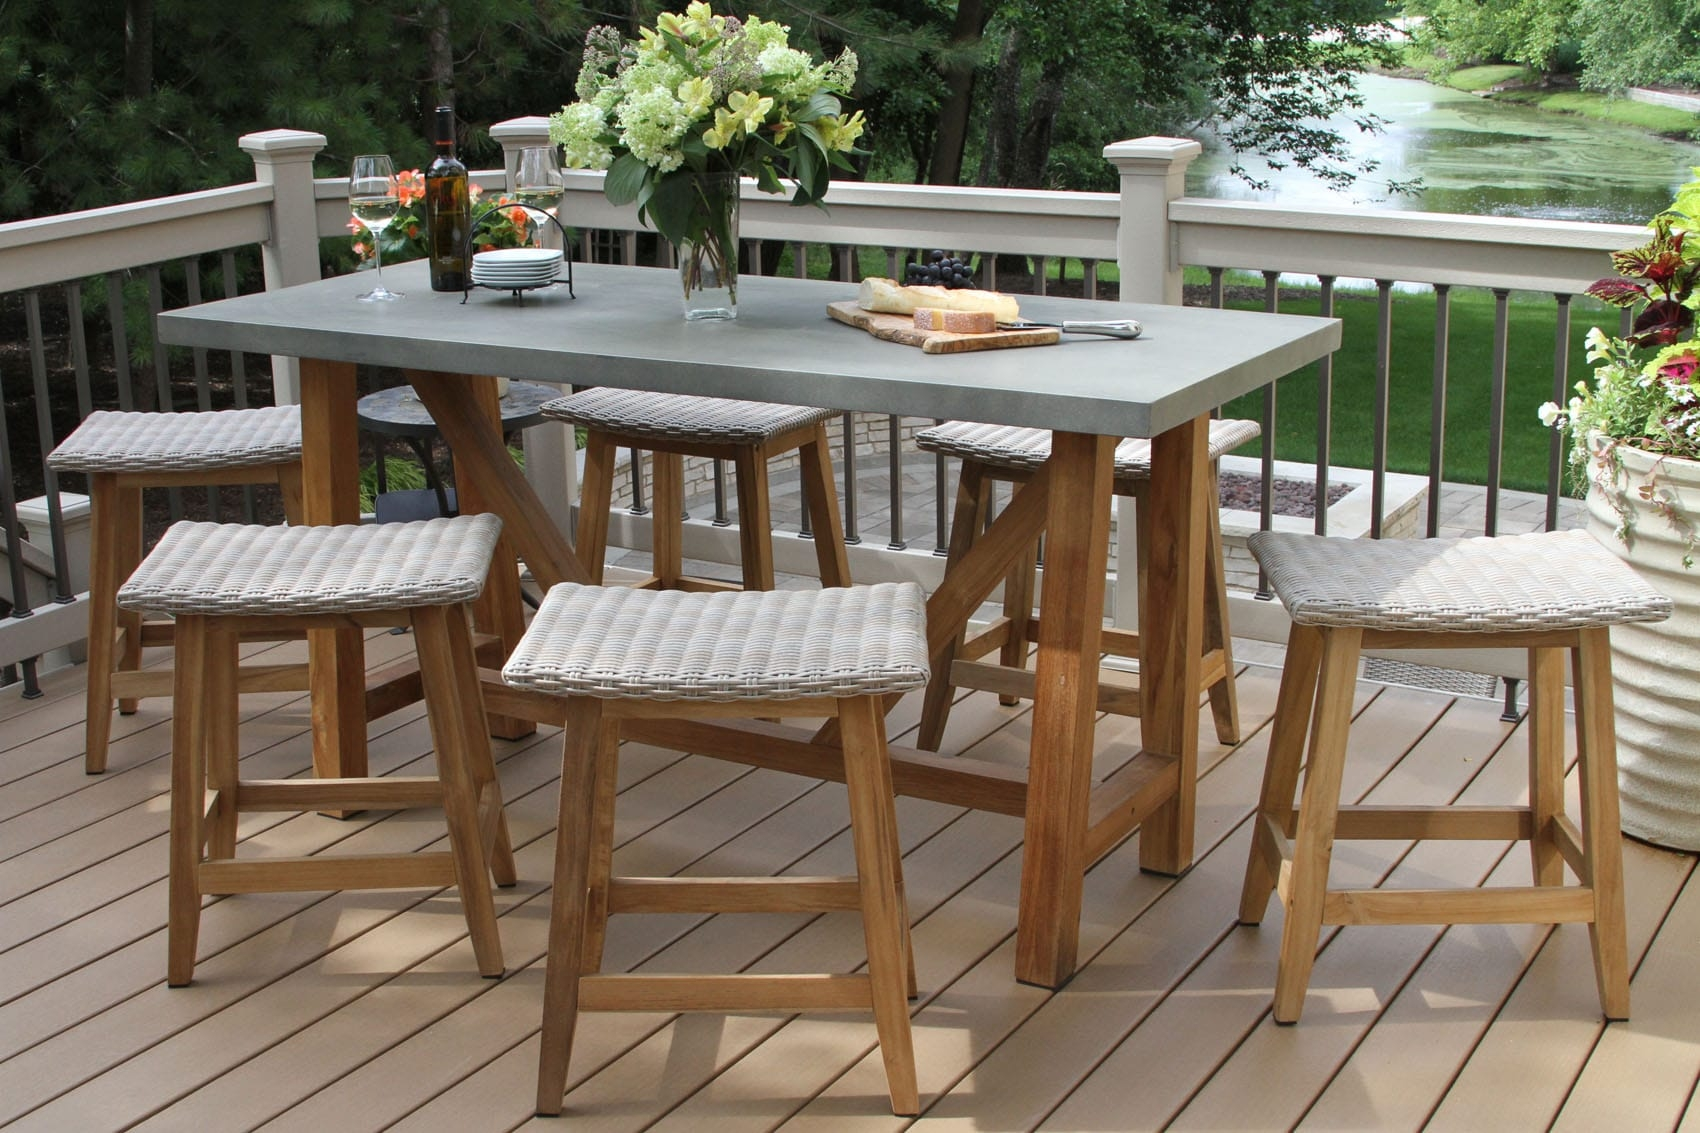 Teak Wicker Counter Dining Set Grey Composite Top Saddle Stools Product Photo